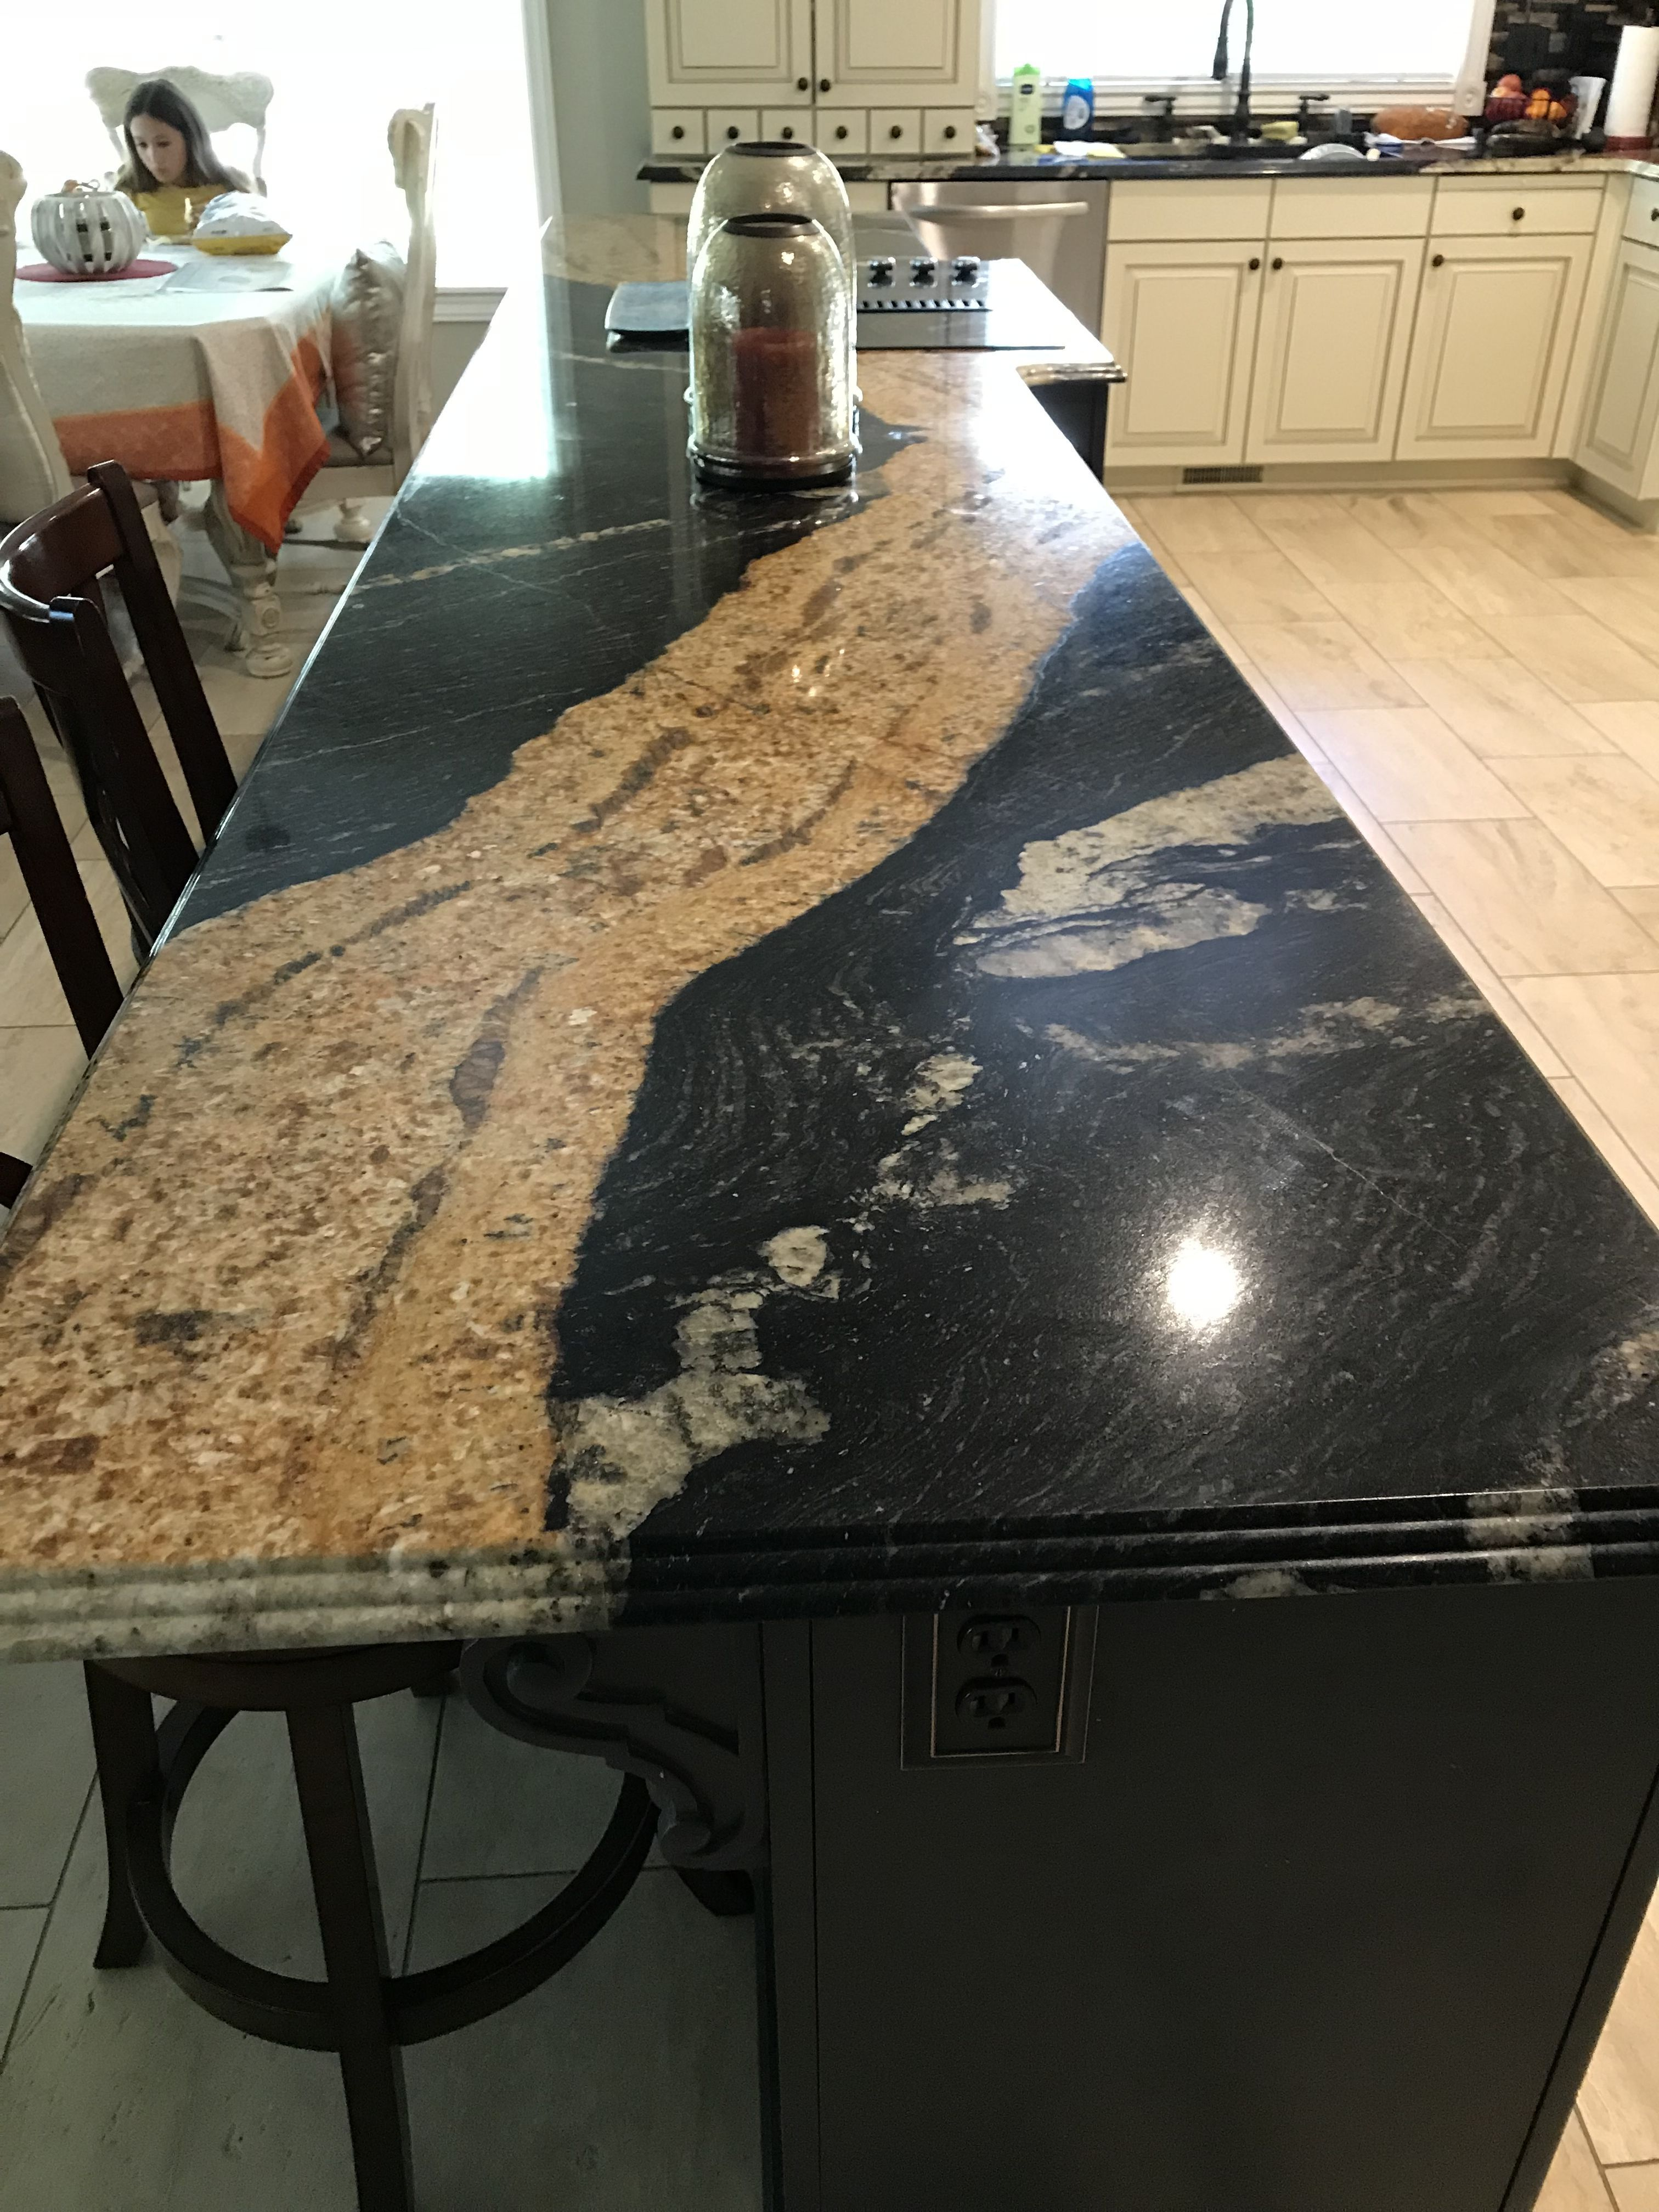 Awesome Useful Ideas Bathroom Counter Tops Butcher Blocks Slate Counter Tops Floors Counter Tops Dec Inexpensive Countertops Diy Countertops Cheap Countertops